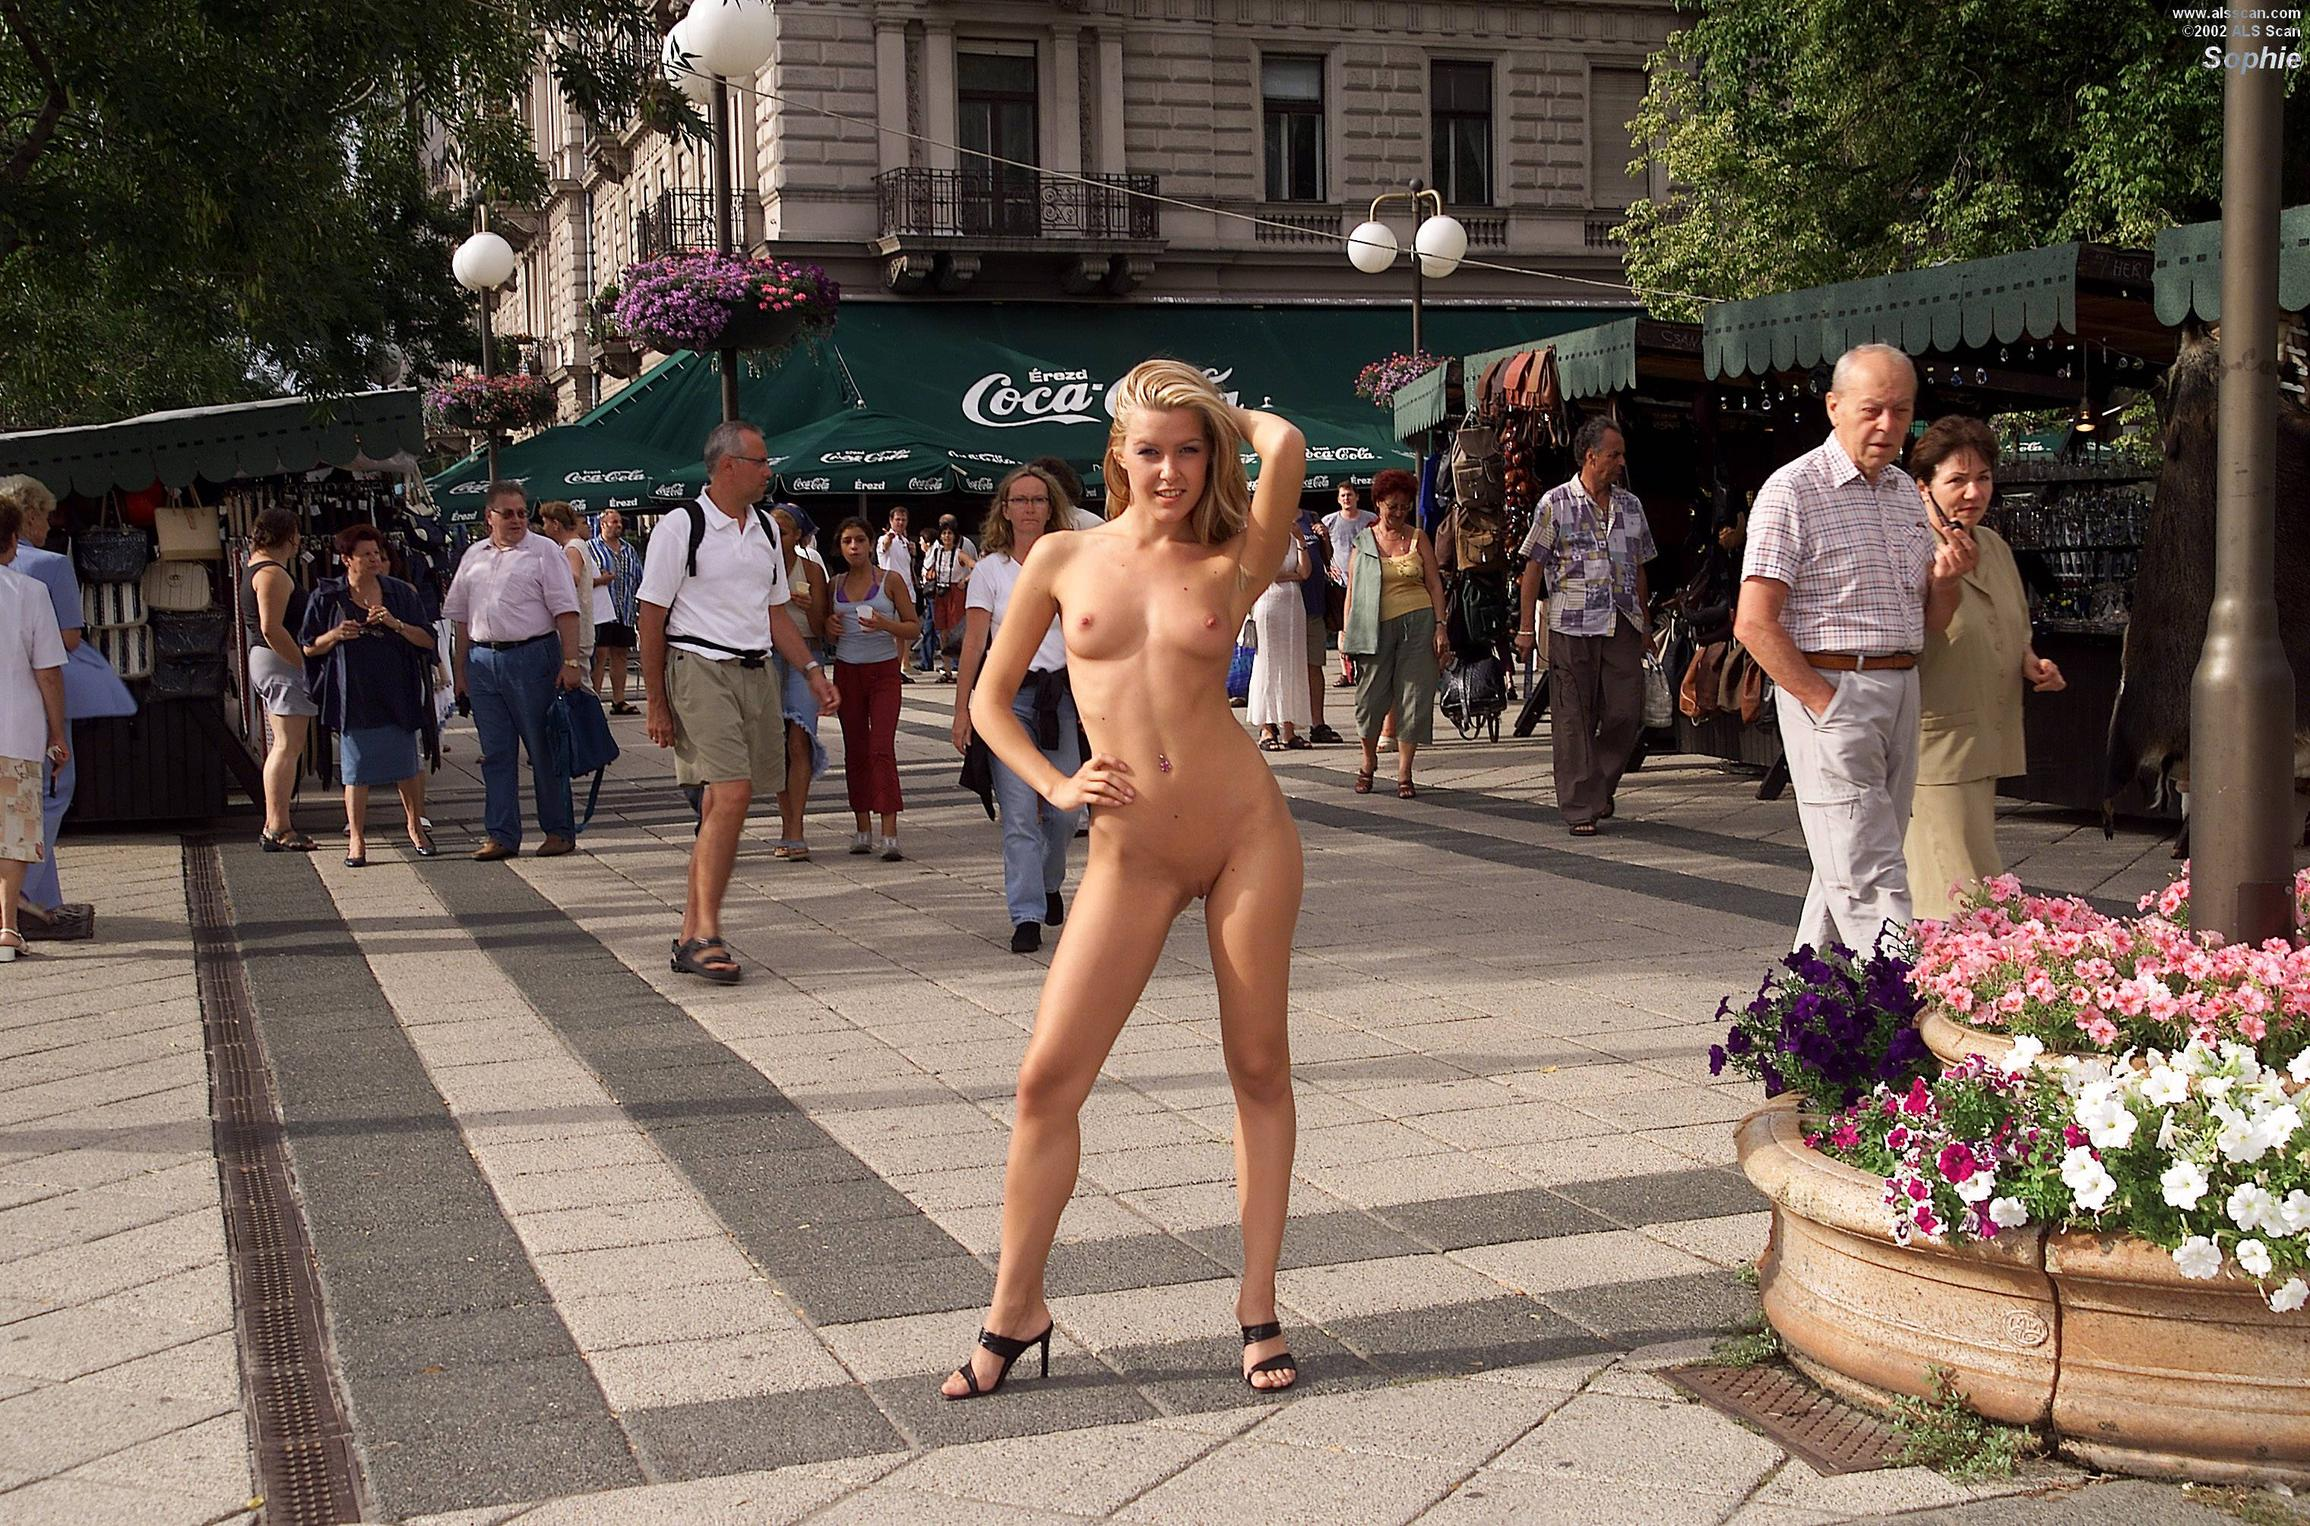 Naked people in the street